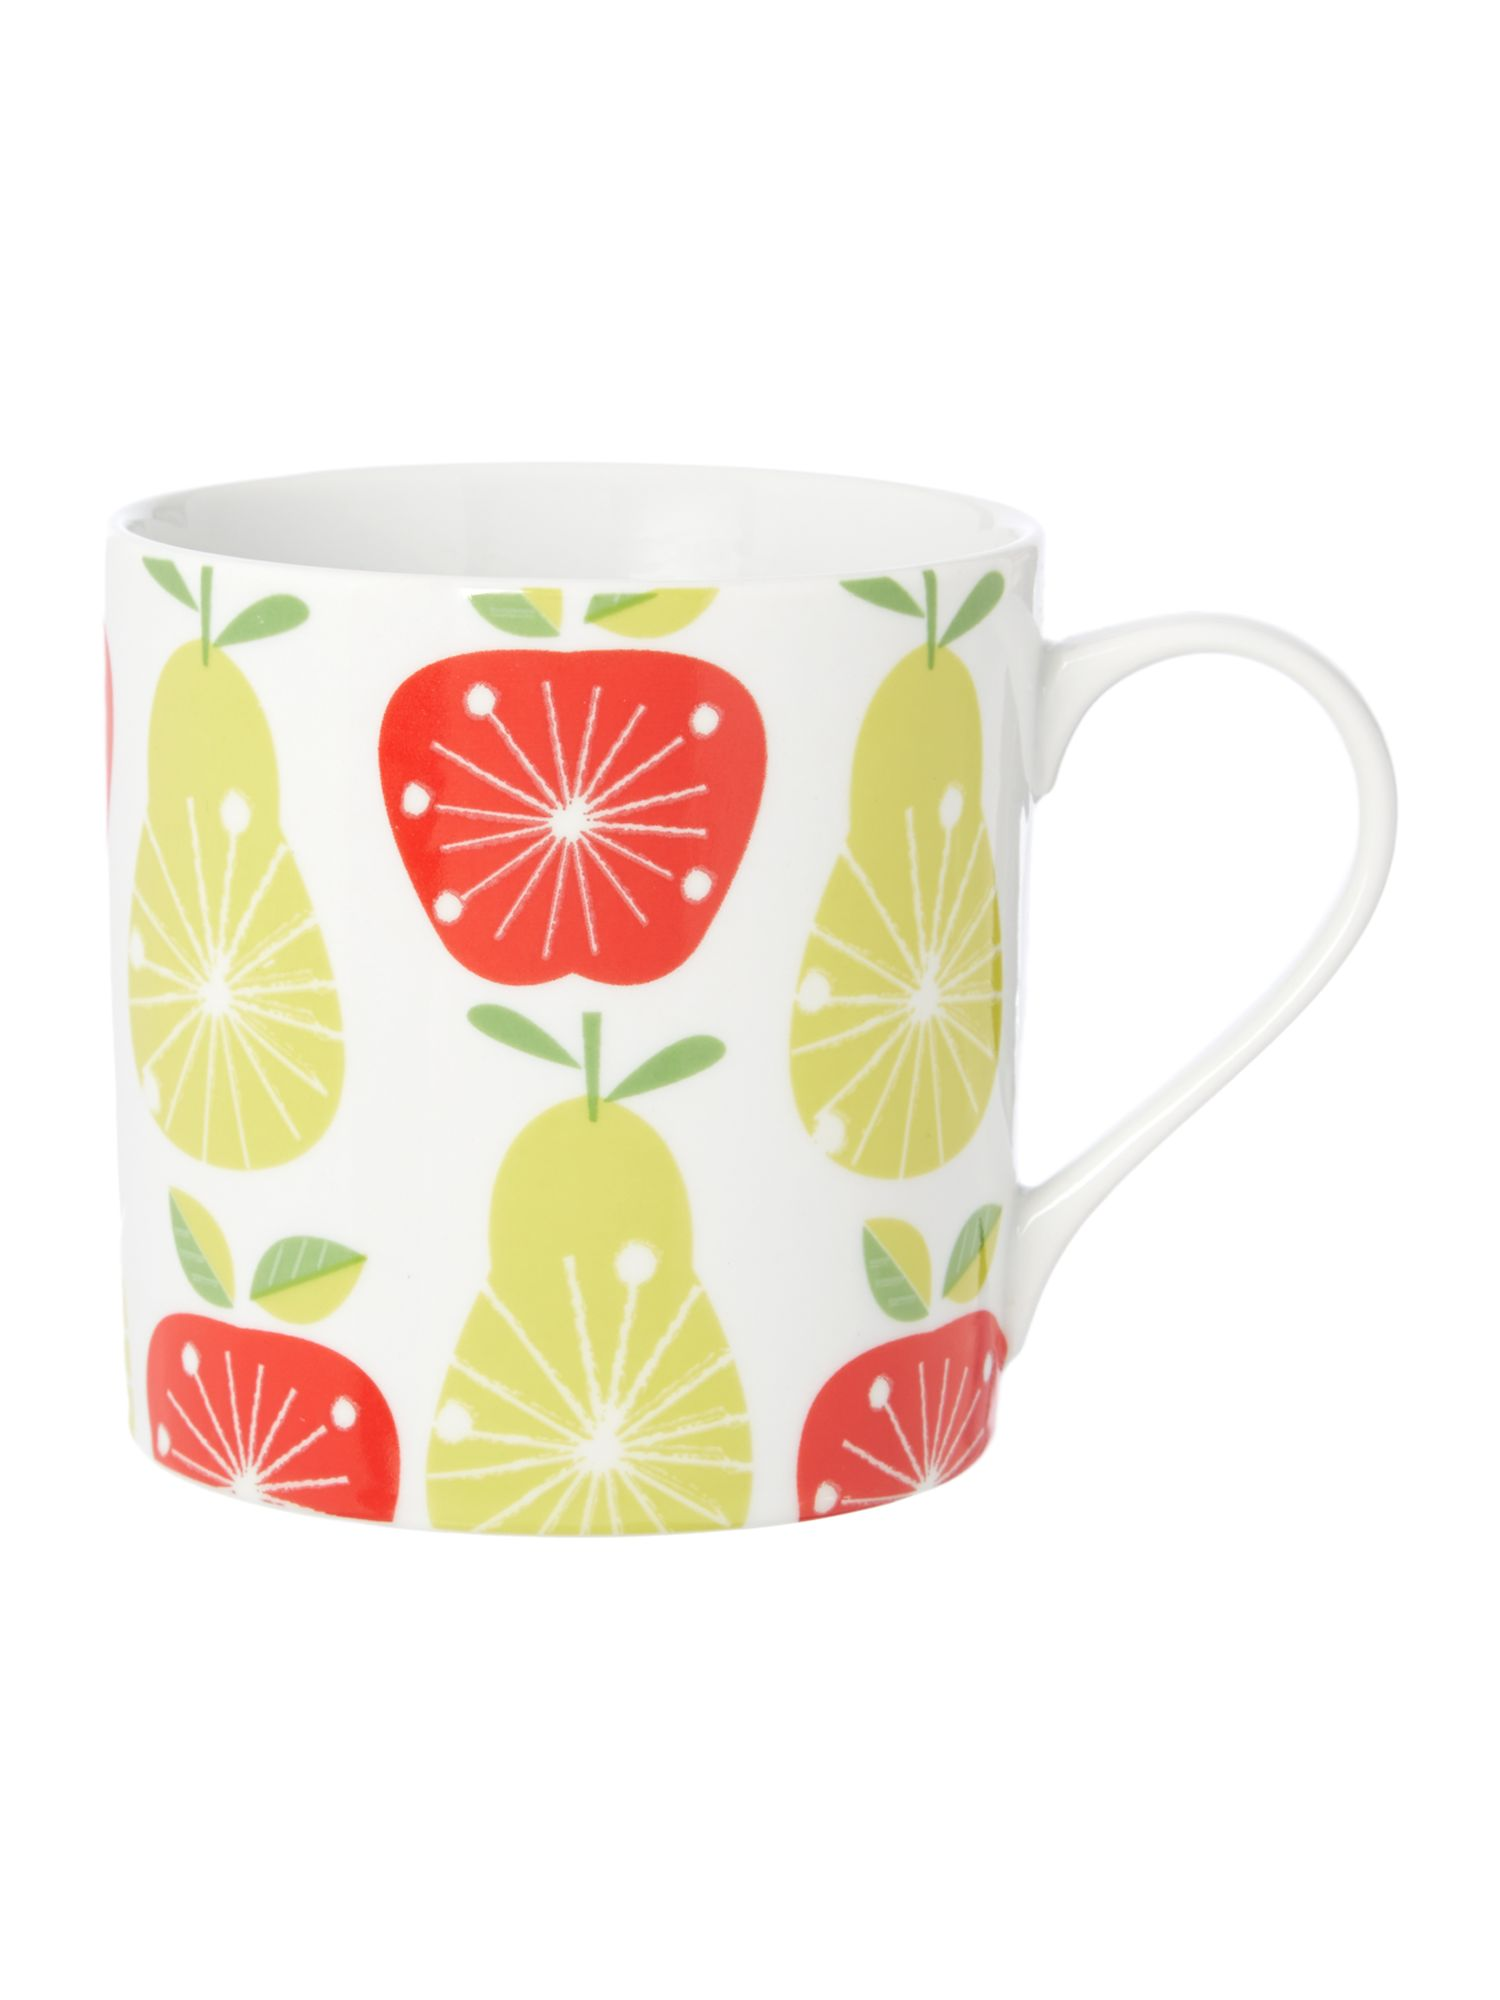 Linea Michelle Mason apple and pear mug